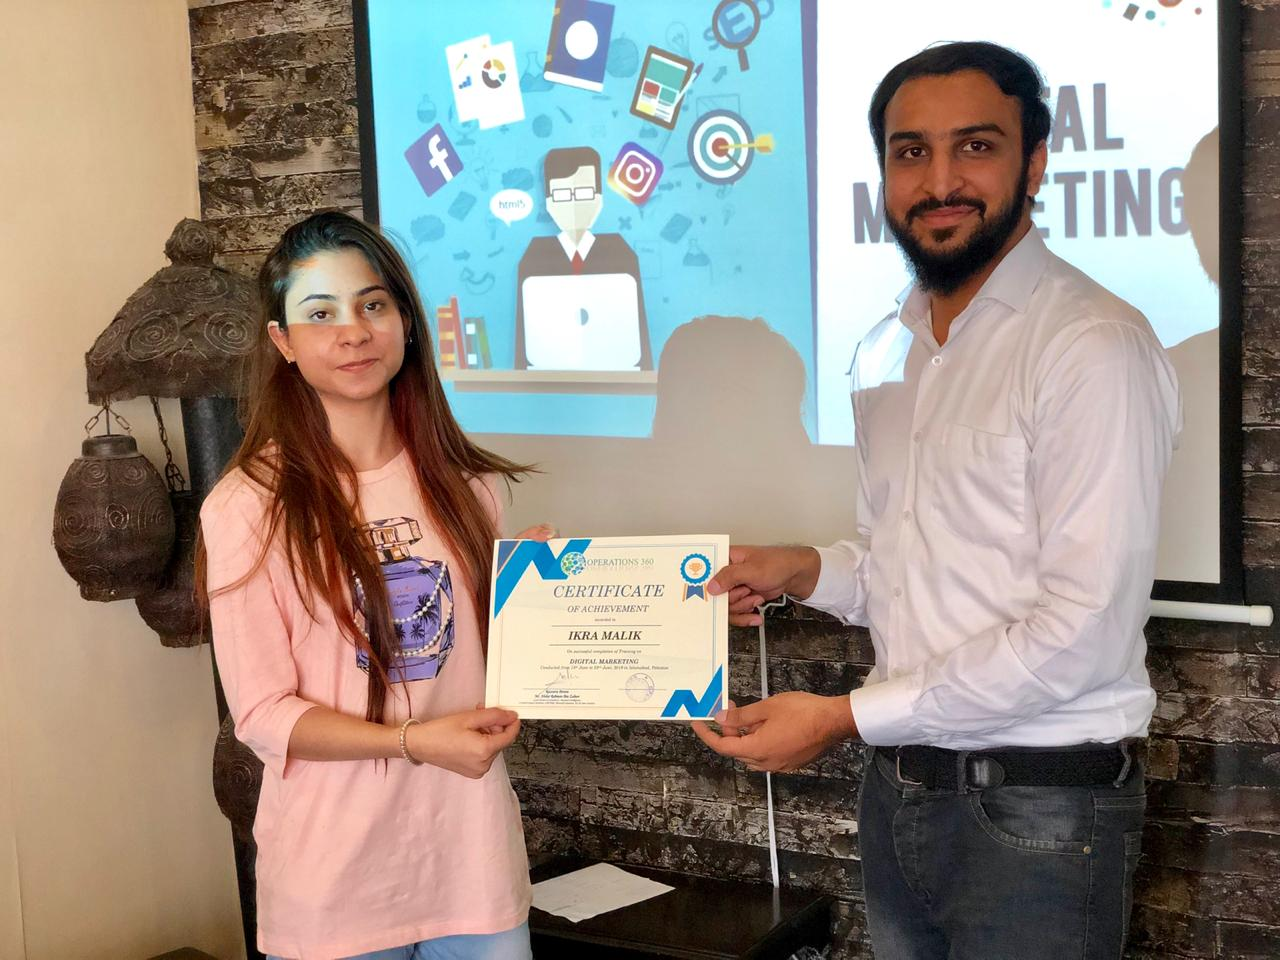 Digital Marketing Certificate distribution in Islamabad